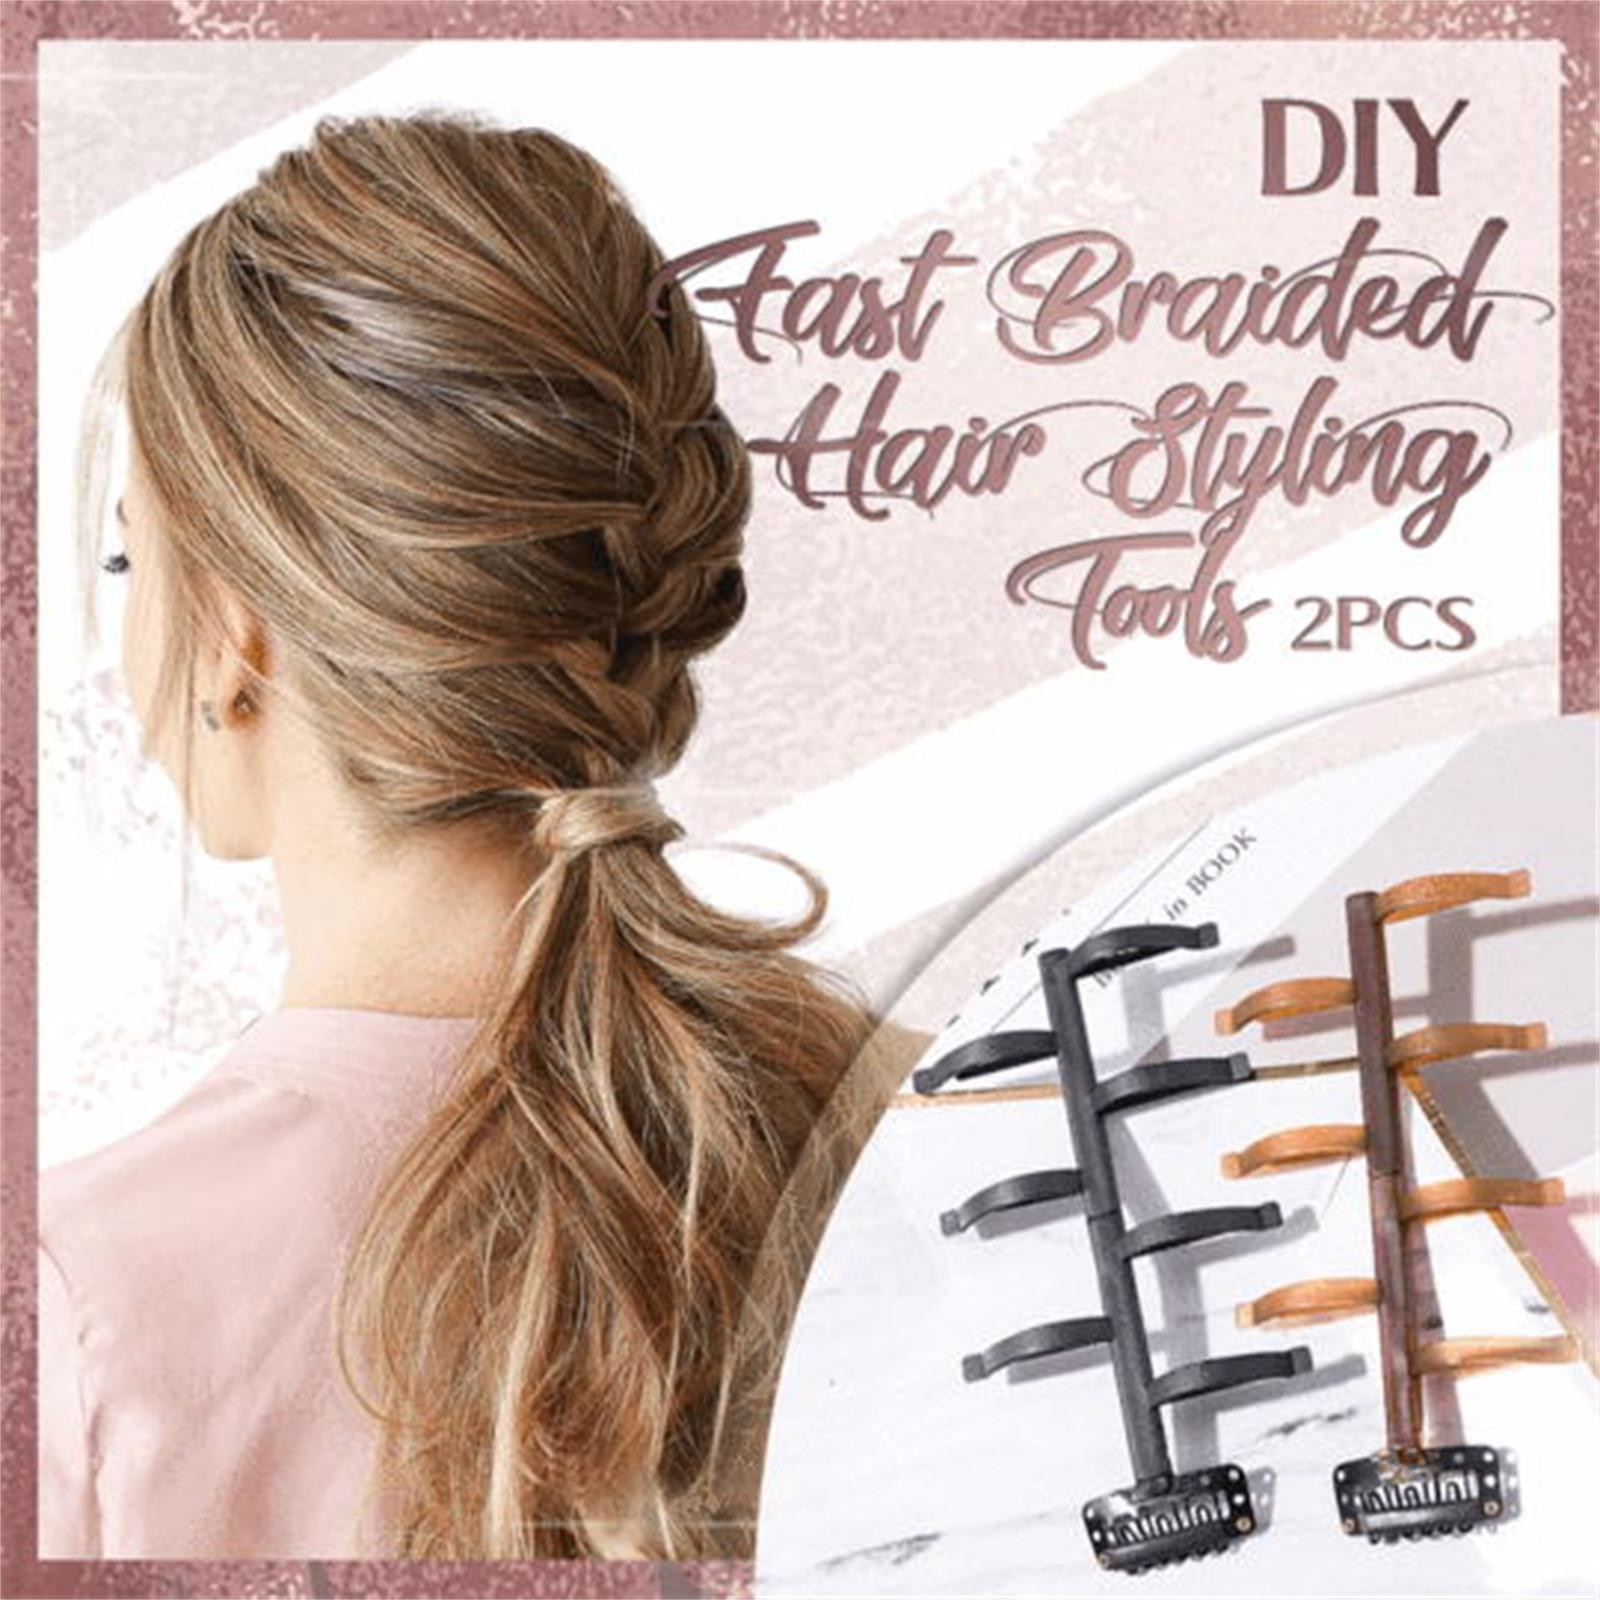 Diy Fast Braided Hair Styling Tools Quick Hair Tools Women Hair Accessories Diy Fast Hair Styling To